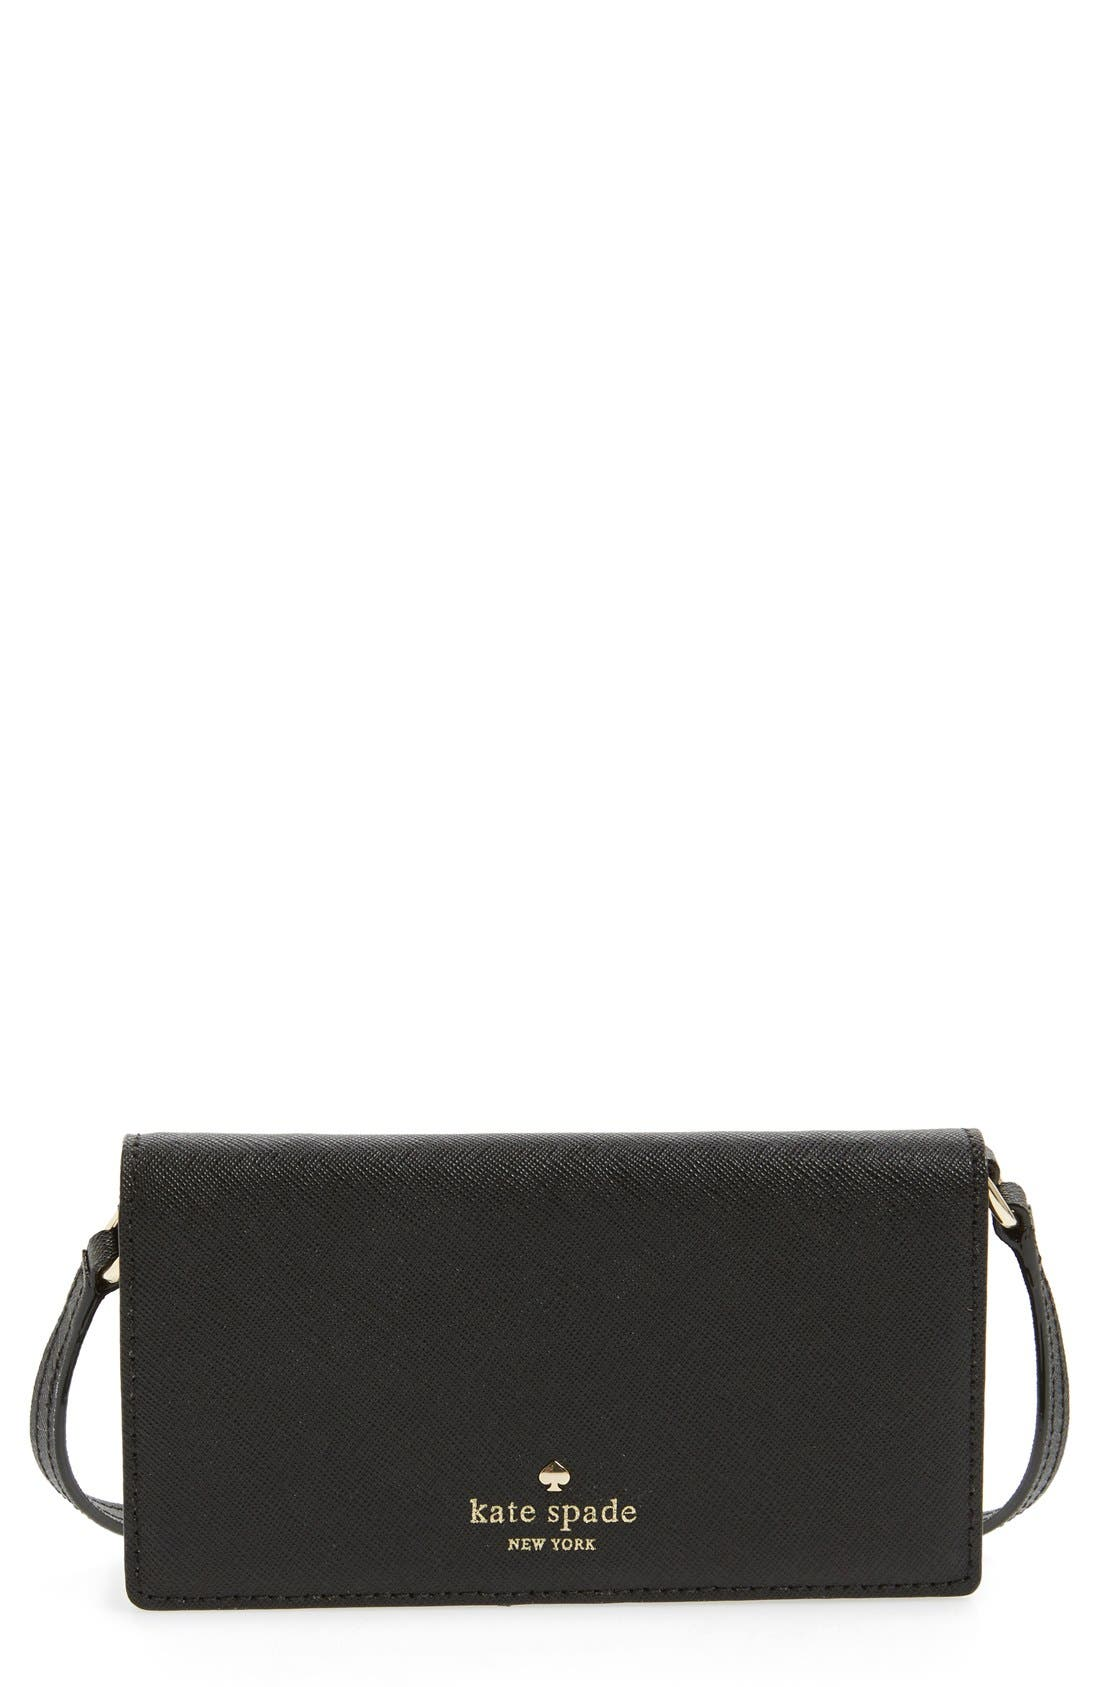 Alternate Image 1 Selected - kate spade new york iPhone 6 & 6s leather crossbody wallet